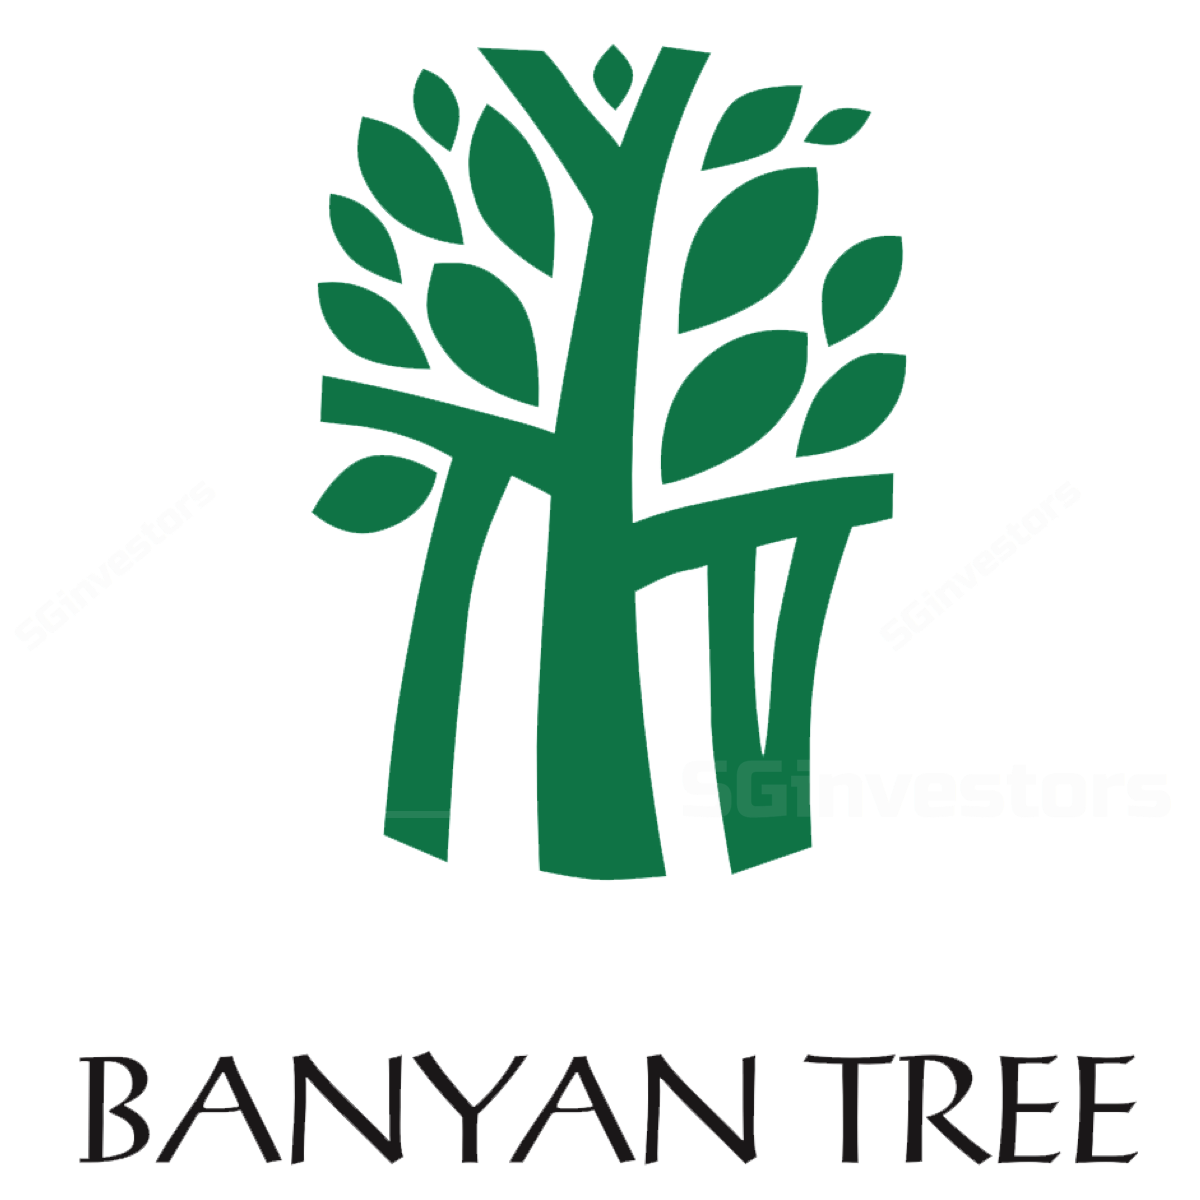 Banyan Tree Holdings Limited - Phillip Securities 2017-08-04: A New Era Through Partnerships